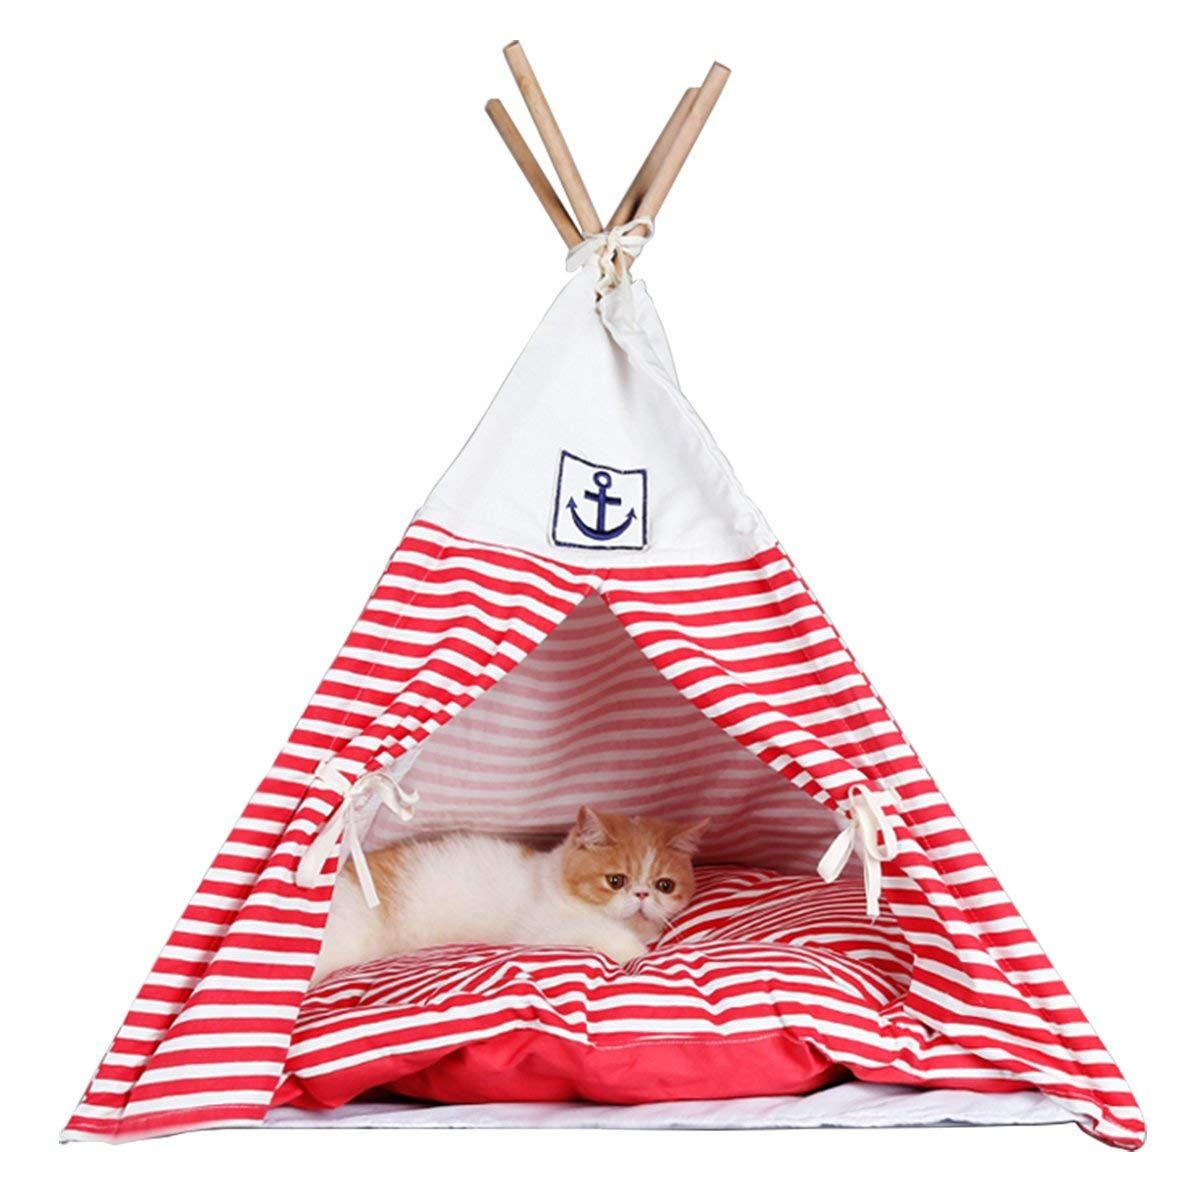 Penck Pet Supplies Washable Durable Navy Stripe Style Pet House Tent And Pet Bed Mat For Little Dogs And Cats 28 Inch Tall Tent Wi With Images Teddy Dog Dog House